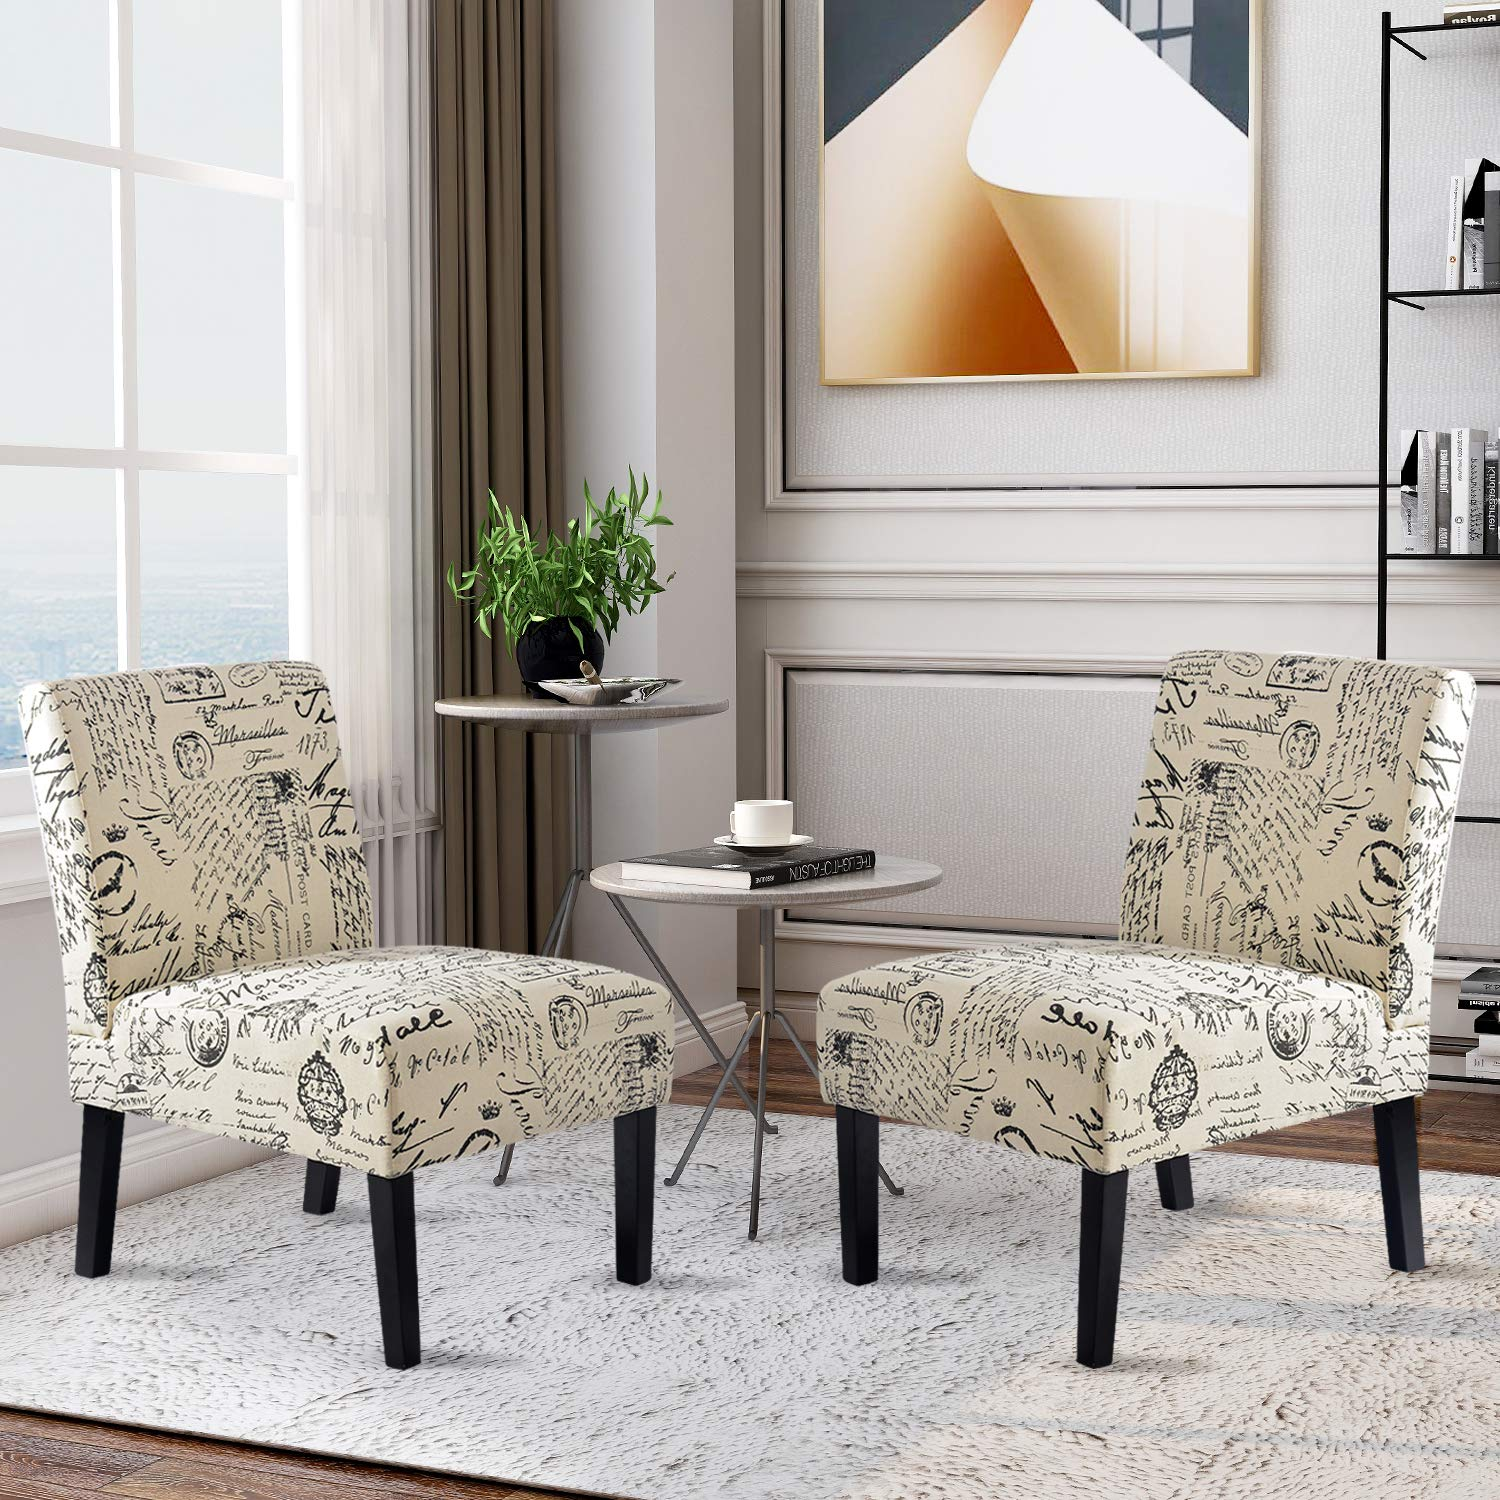 Harper&Bright Designs Armless Accent Chair, Set of 2 Upholstered Chairs for  Living Room - Fabric (Script)